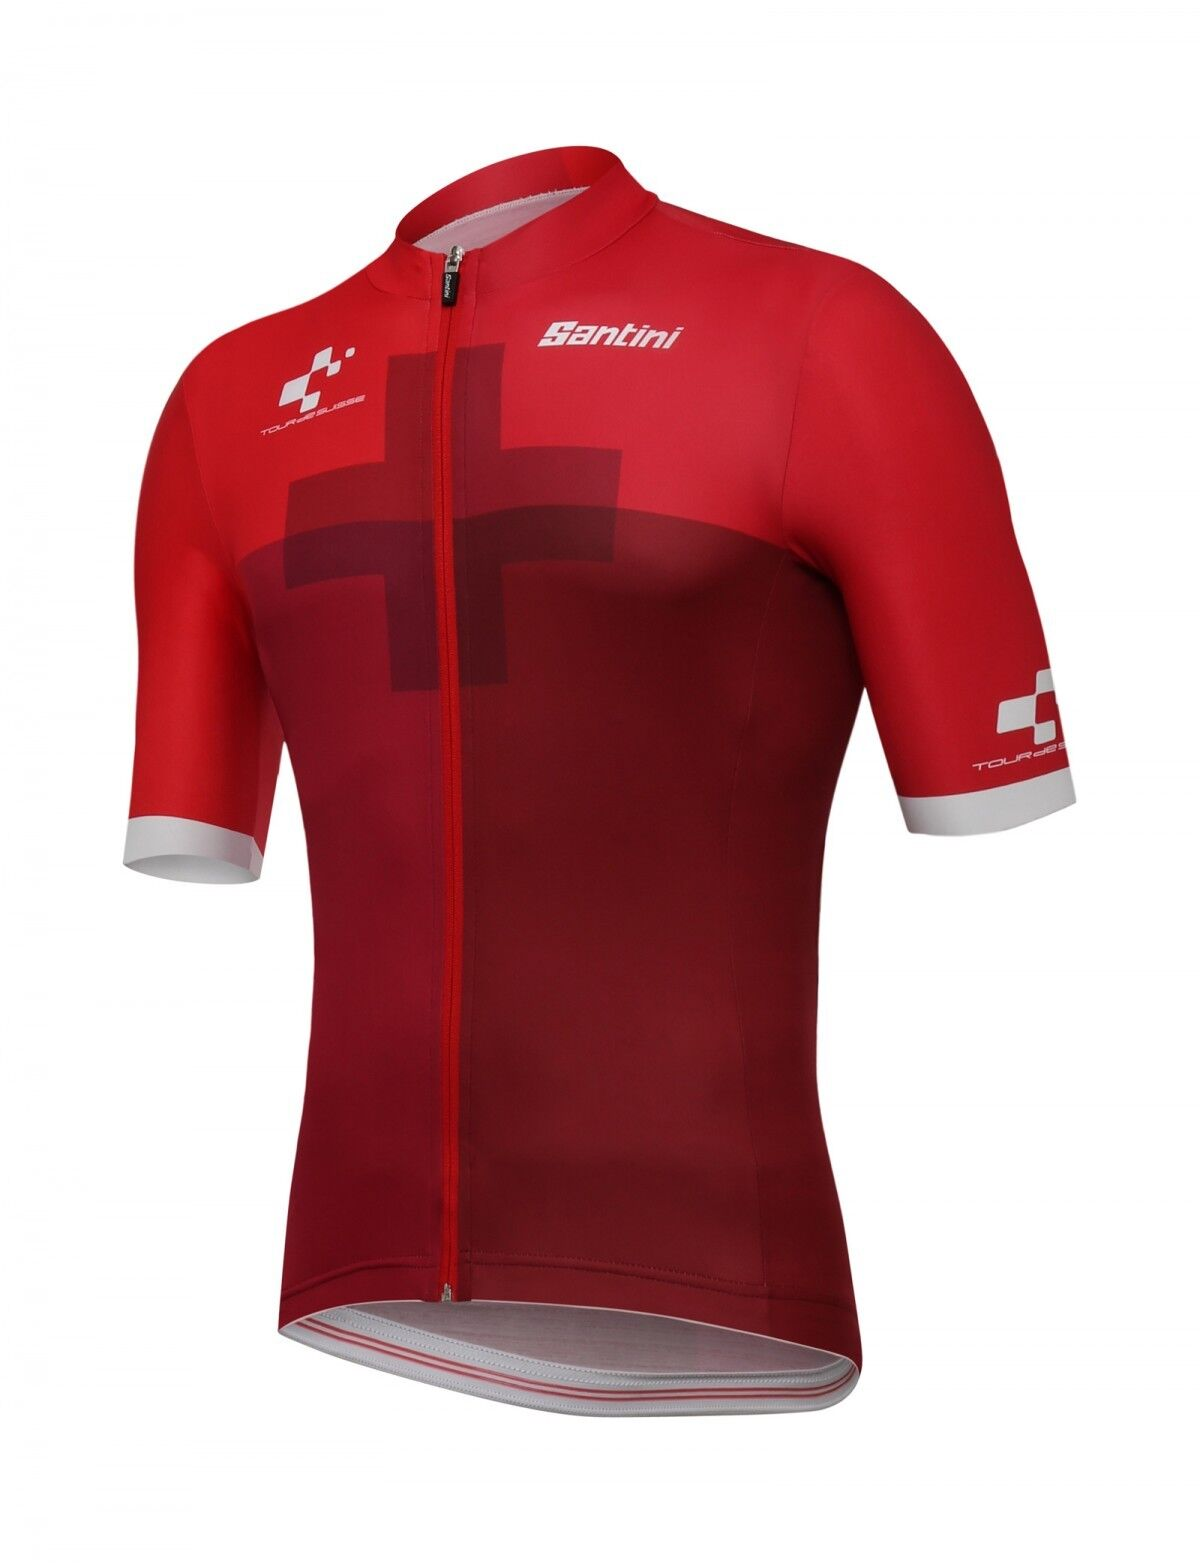 2018 Tour De Suisse CROSS ROT Cycling Jersey Made in  by Santini